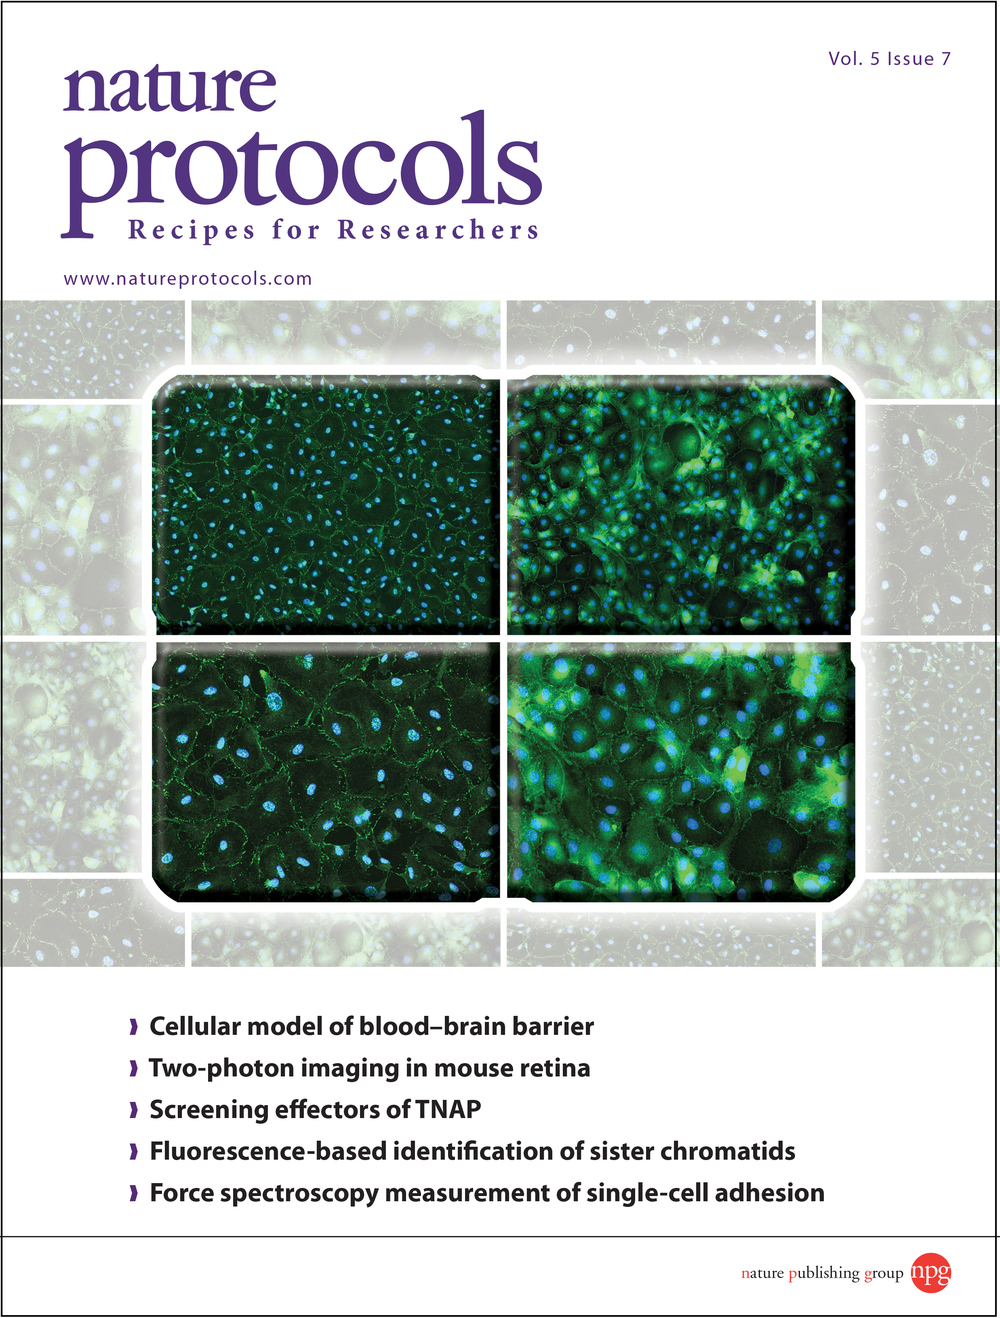 Description from the journal:    Cover:  A monolayer of cultured cells derived from the microvascular endothelium of a human brain. The cells are immunofluorescently stained to show the presence of proteins associated with tight junctions. Image is from the protocol by Bernas et al. on p. 1247. Cover design by Jamel Wooten.